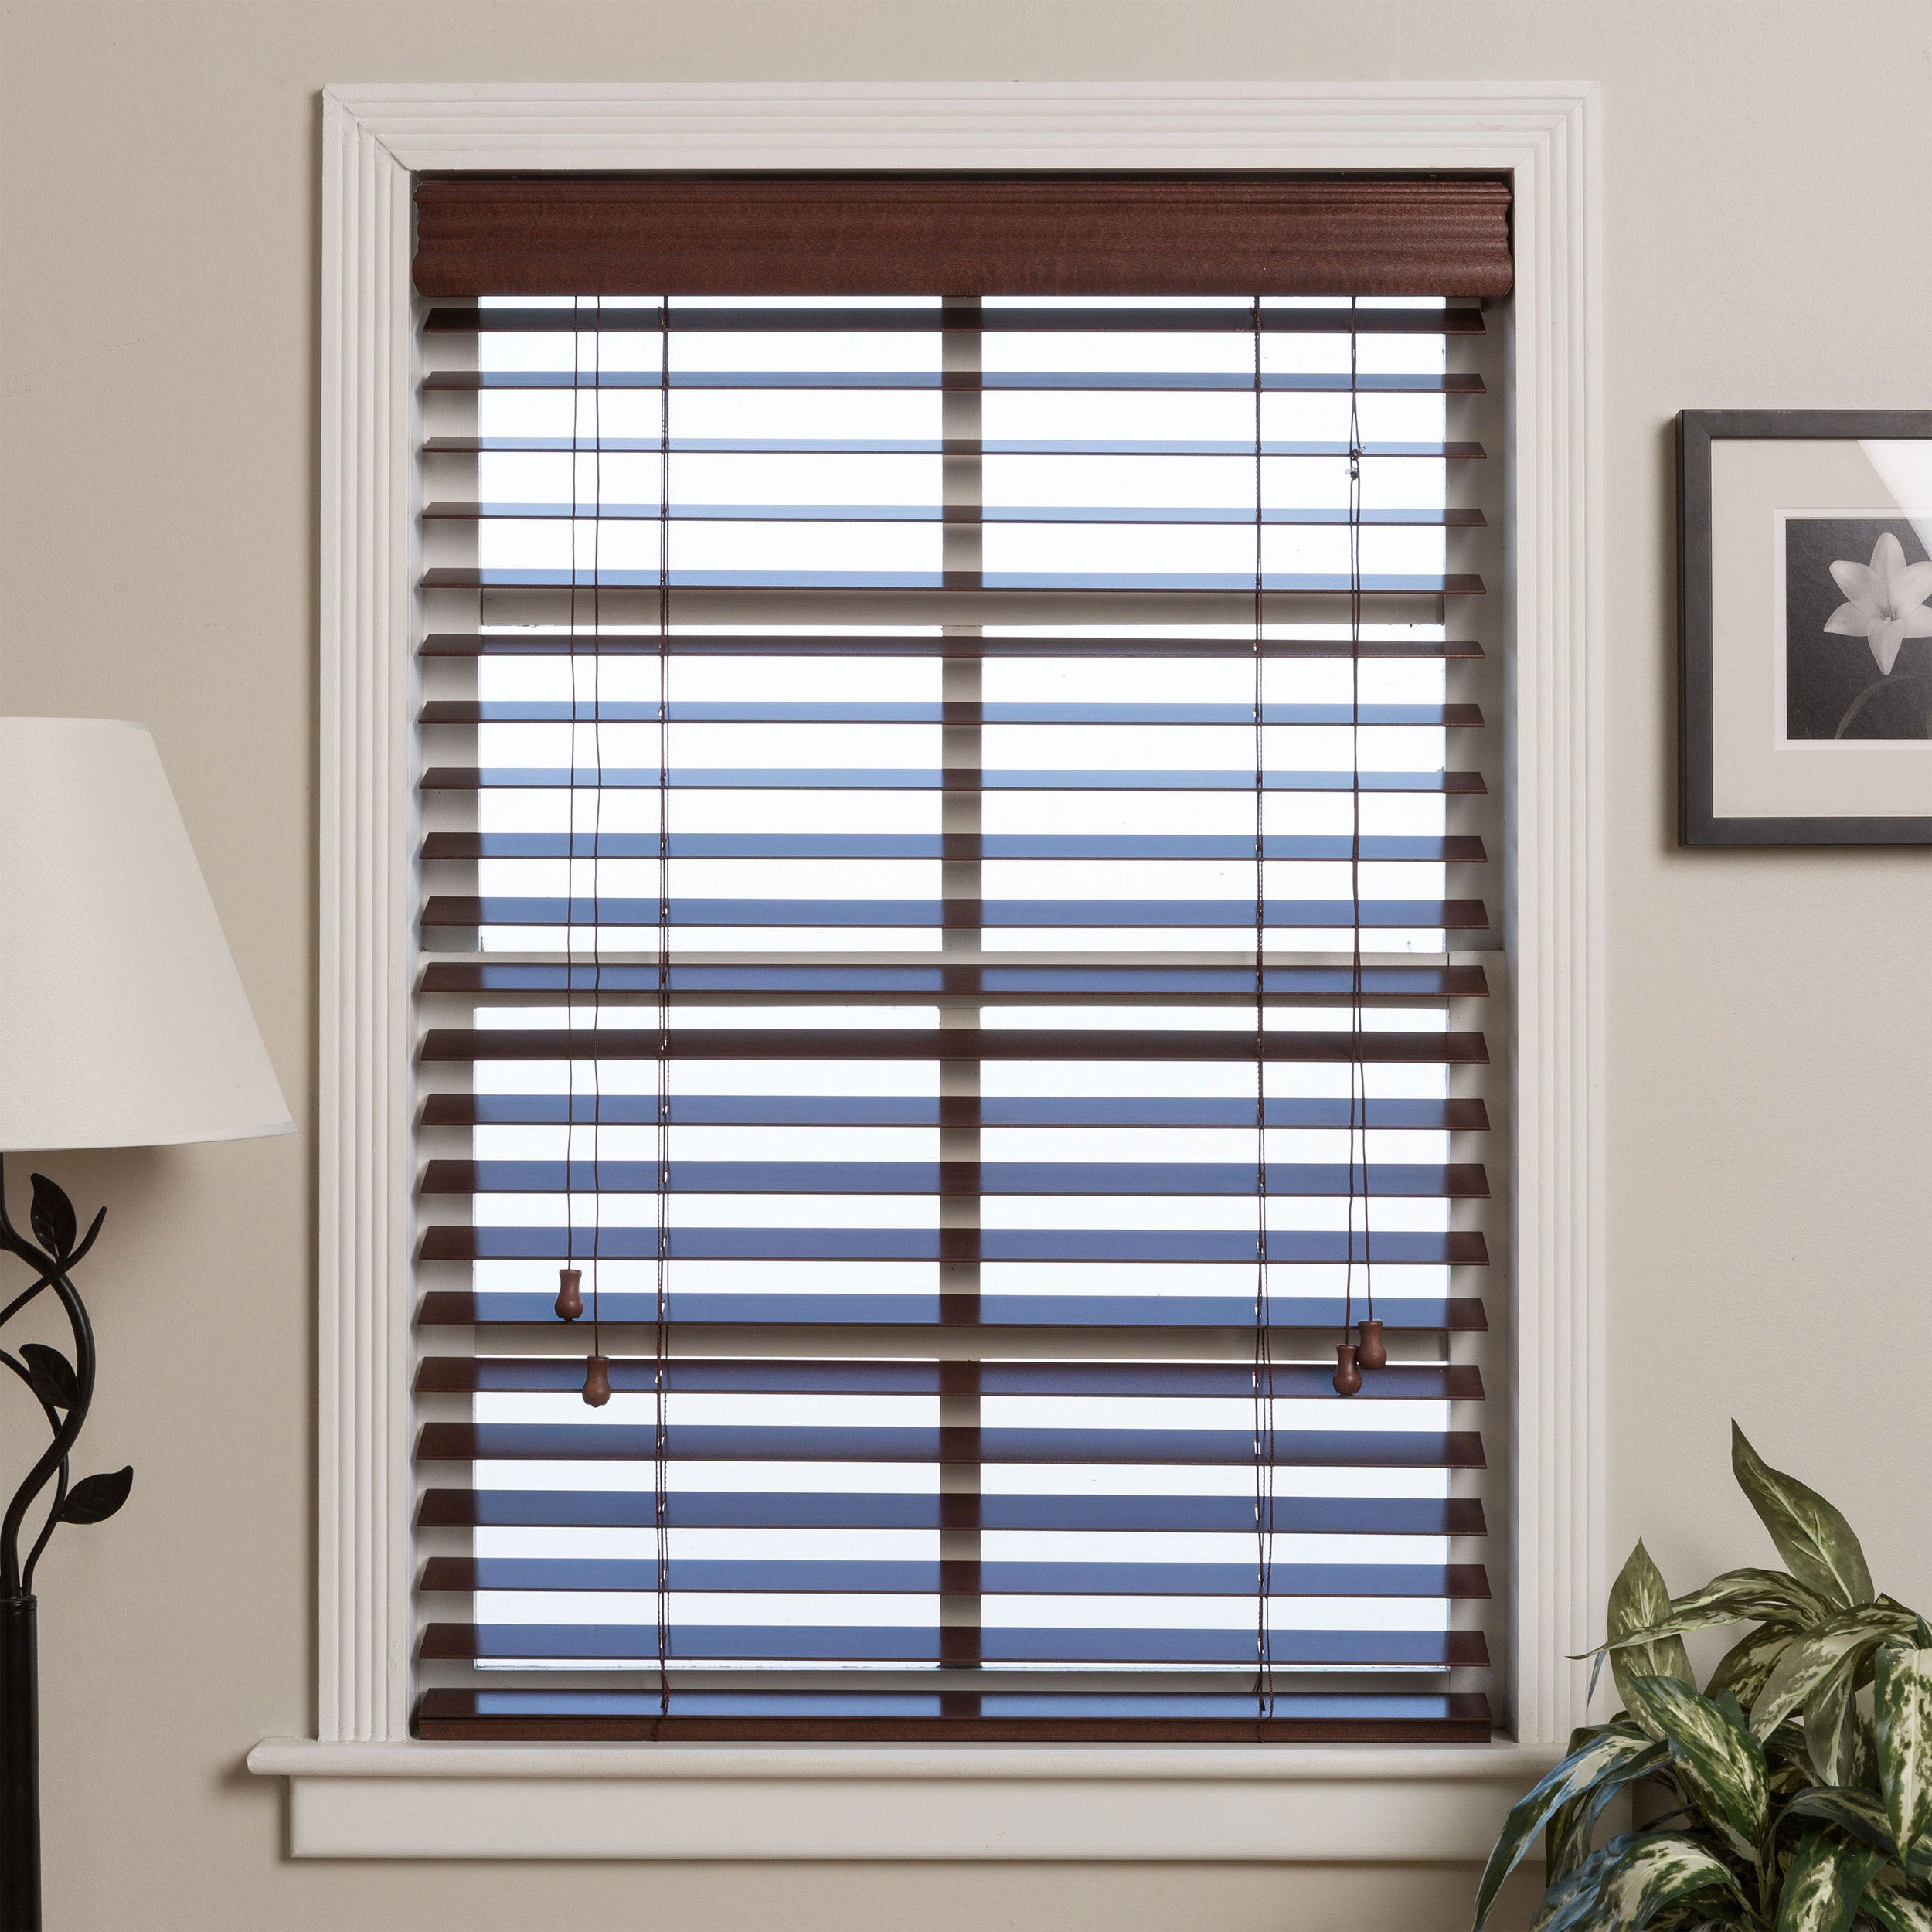 interiors window blinds alpha shades picture vertical size